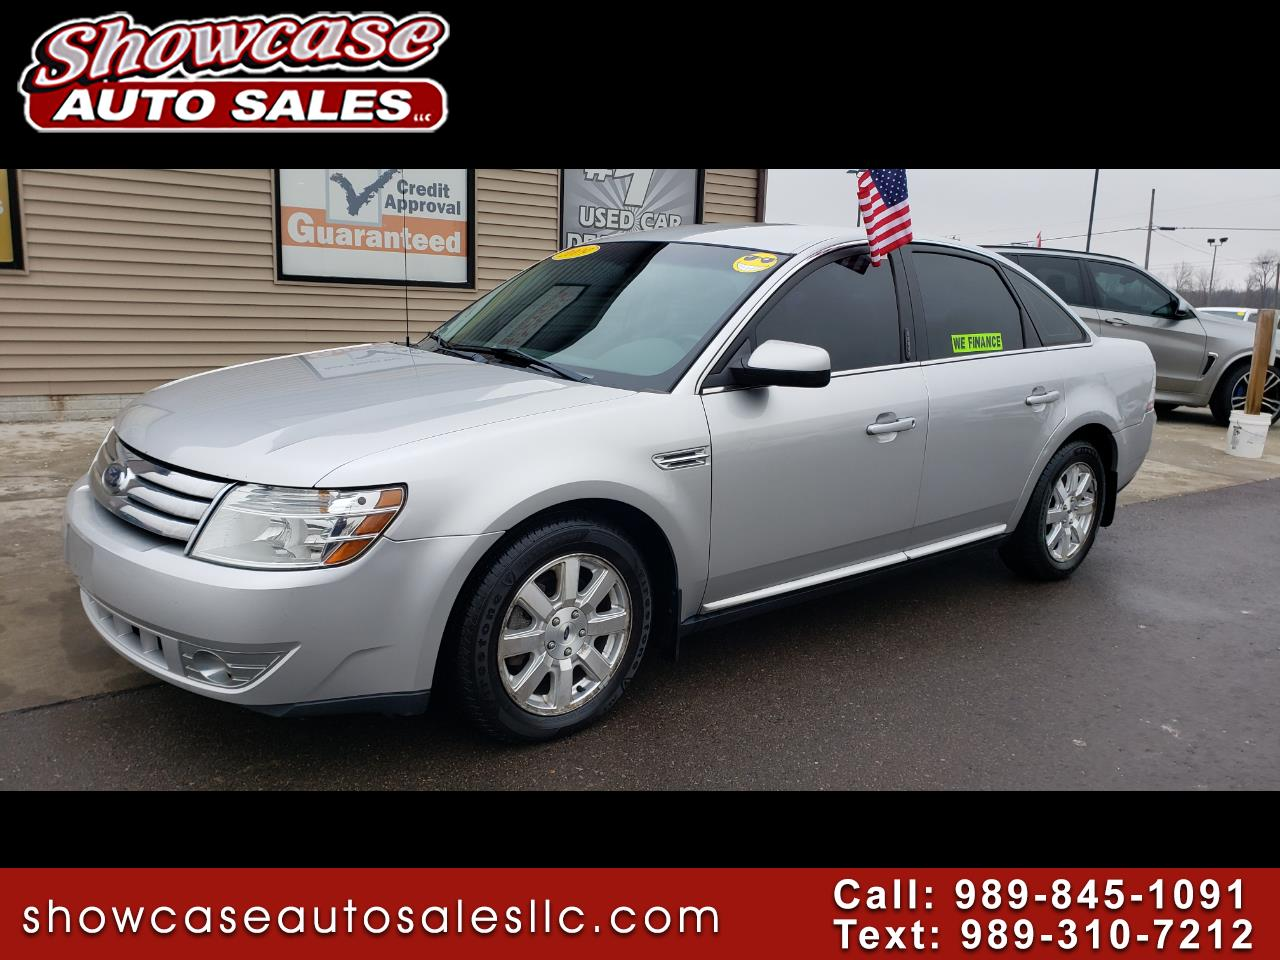 Ford Taurus 4dr Sdn SE FWD 2009